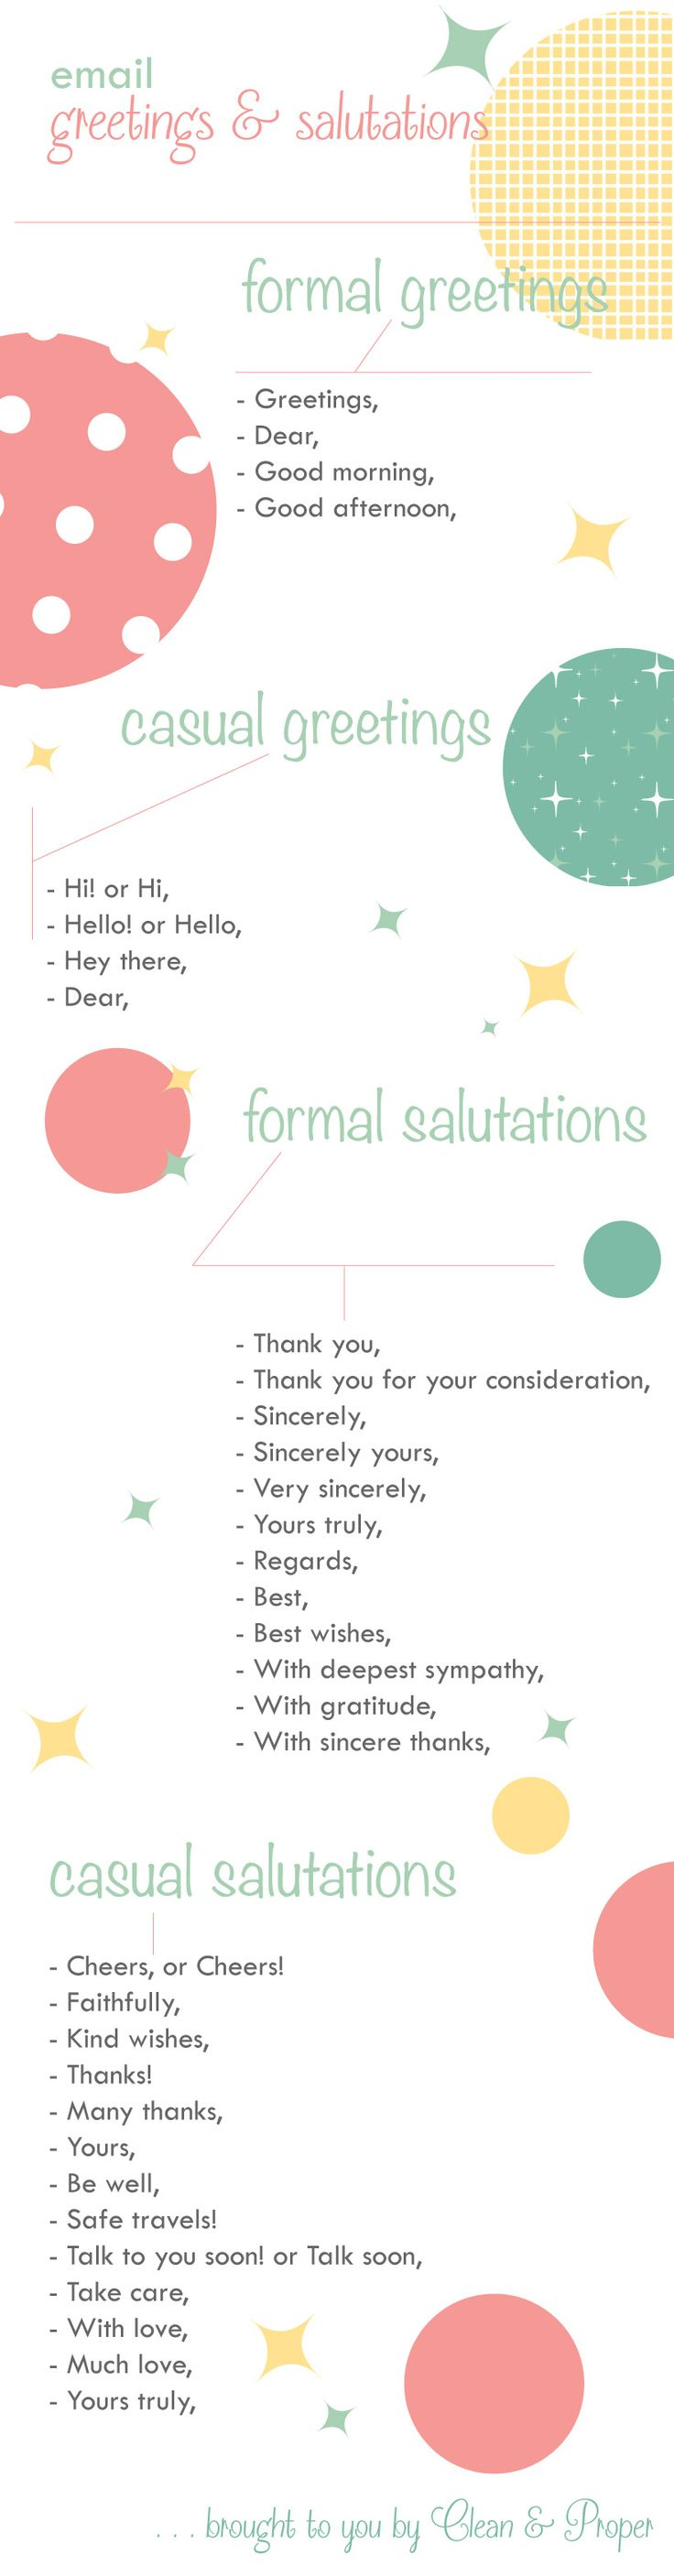 Email Greetings and Salutations! #etiquette #manners #correspondence